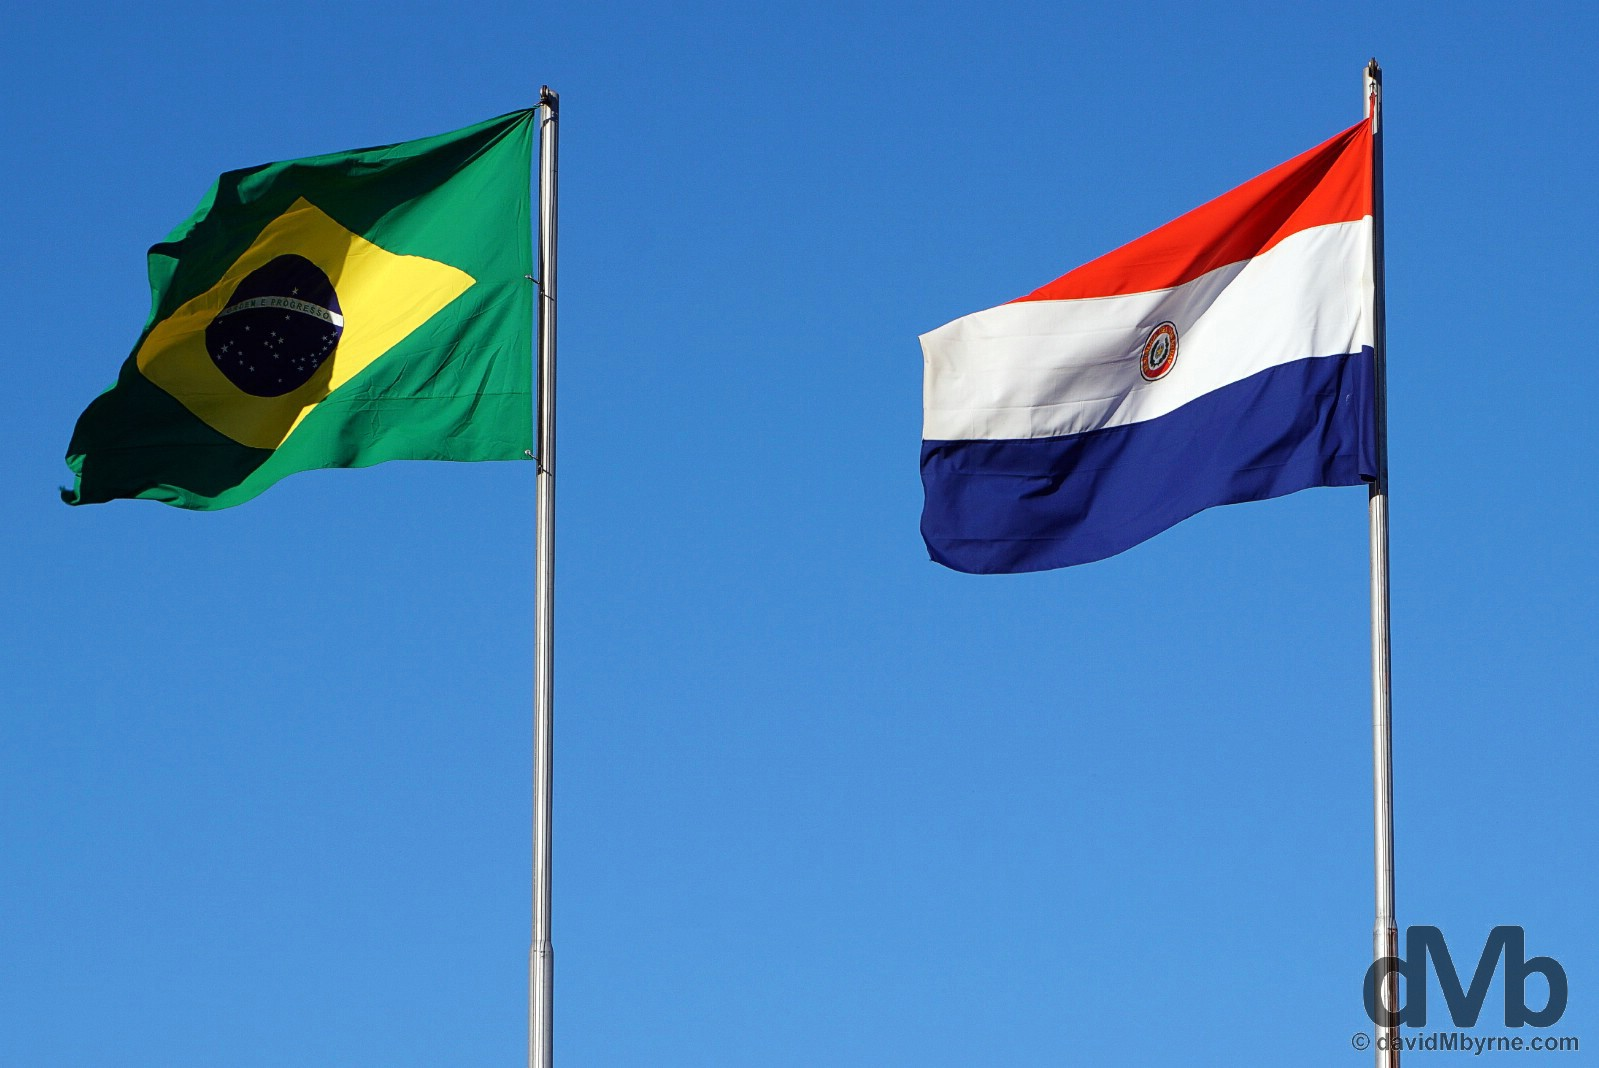 Brazilian & Paraguayan flags at the Visitor's Centre of the Itaipu Dam on the Brazil-Paraguay border. September 13, 2015.